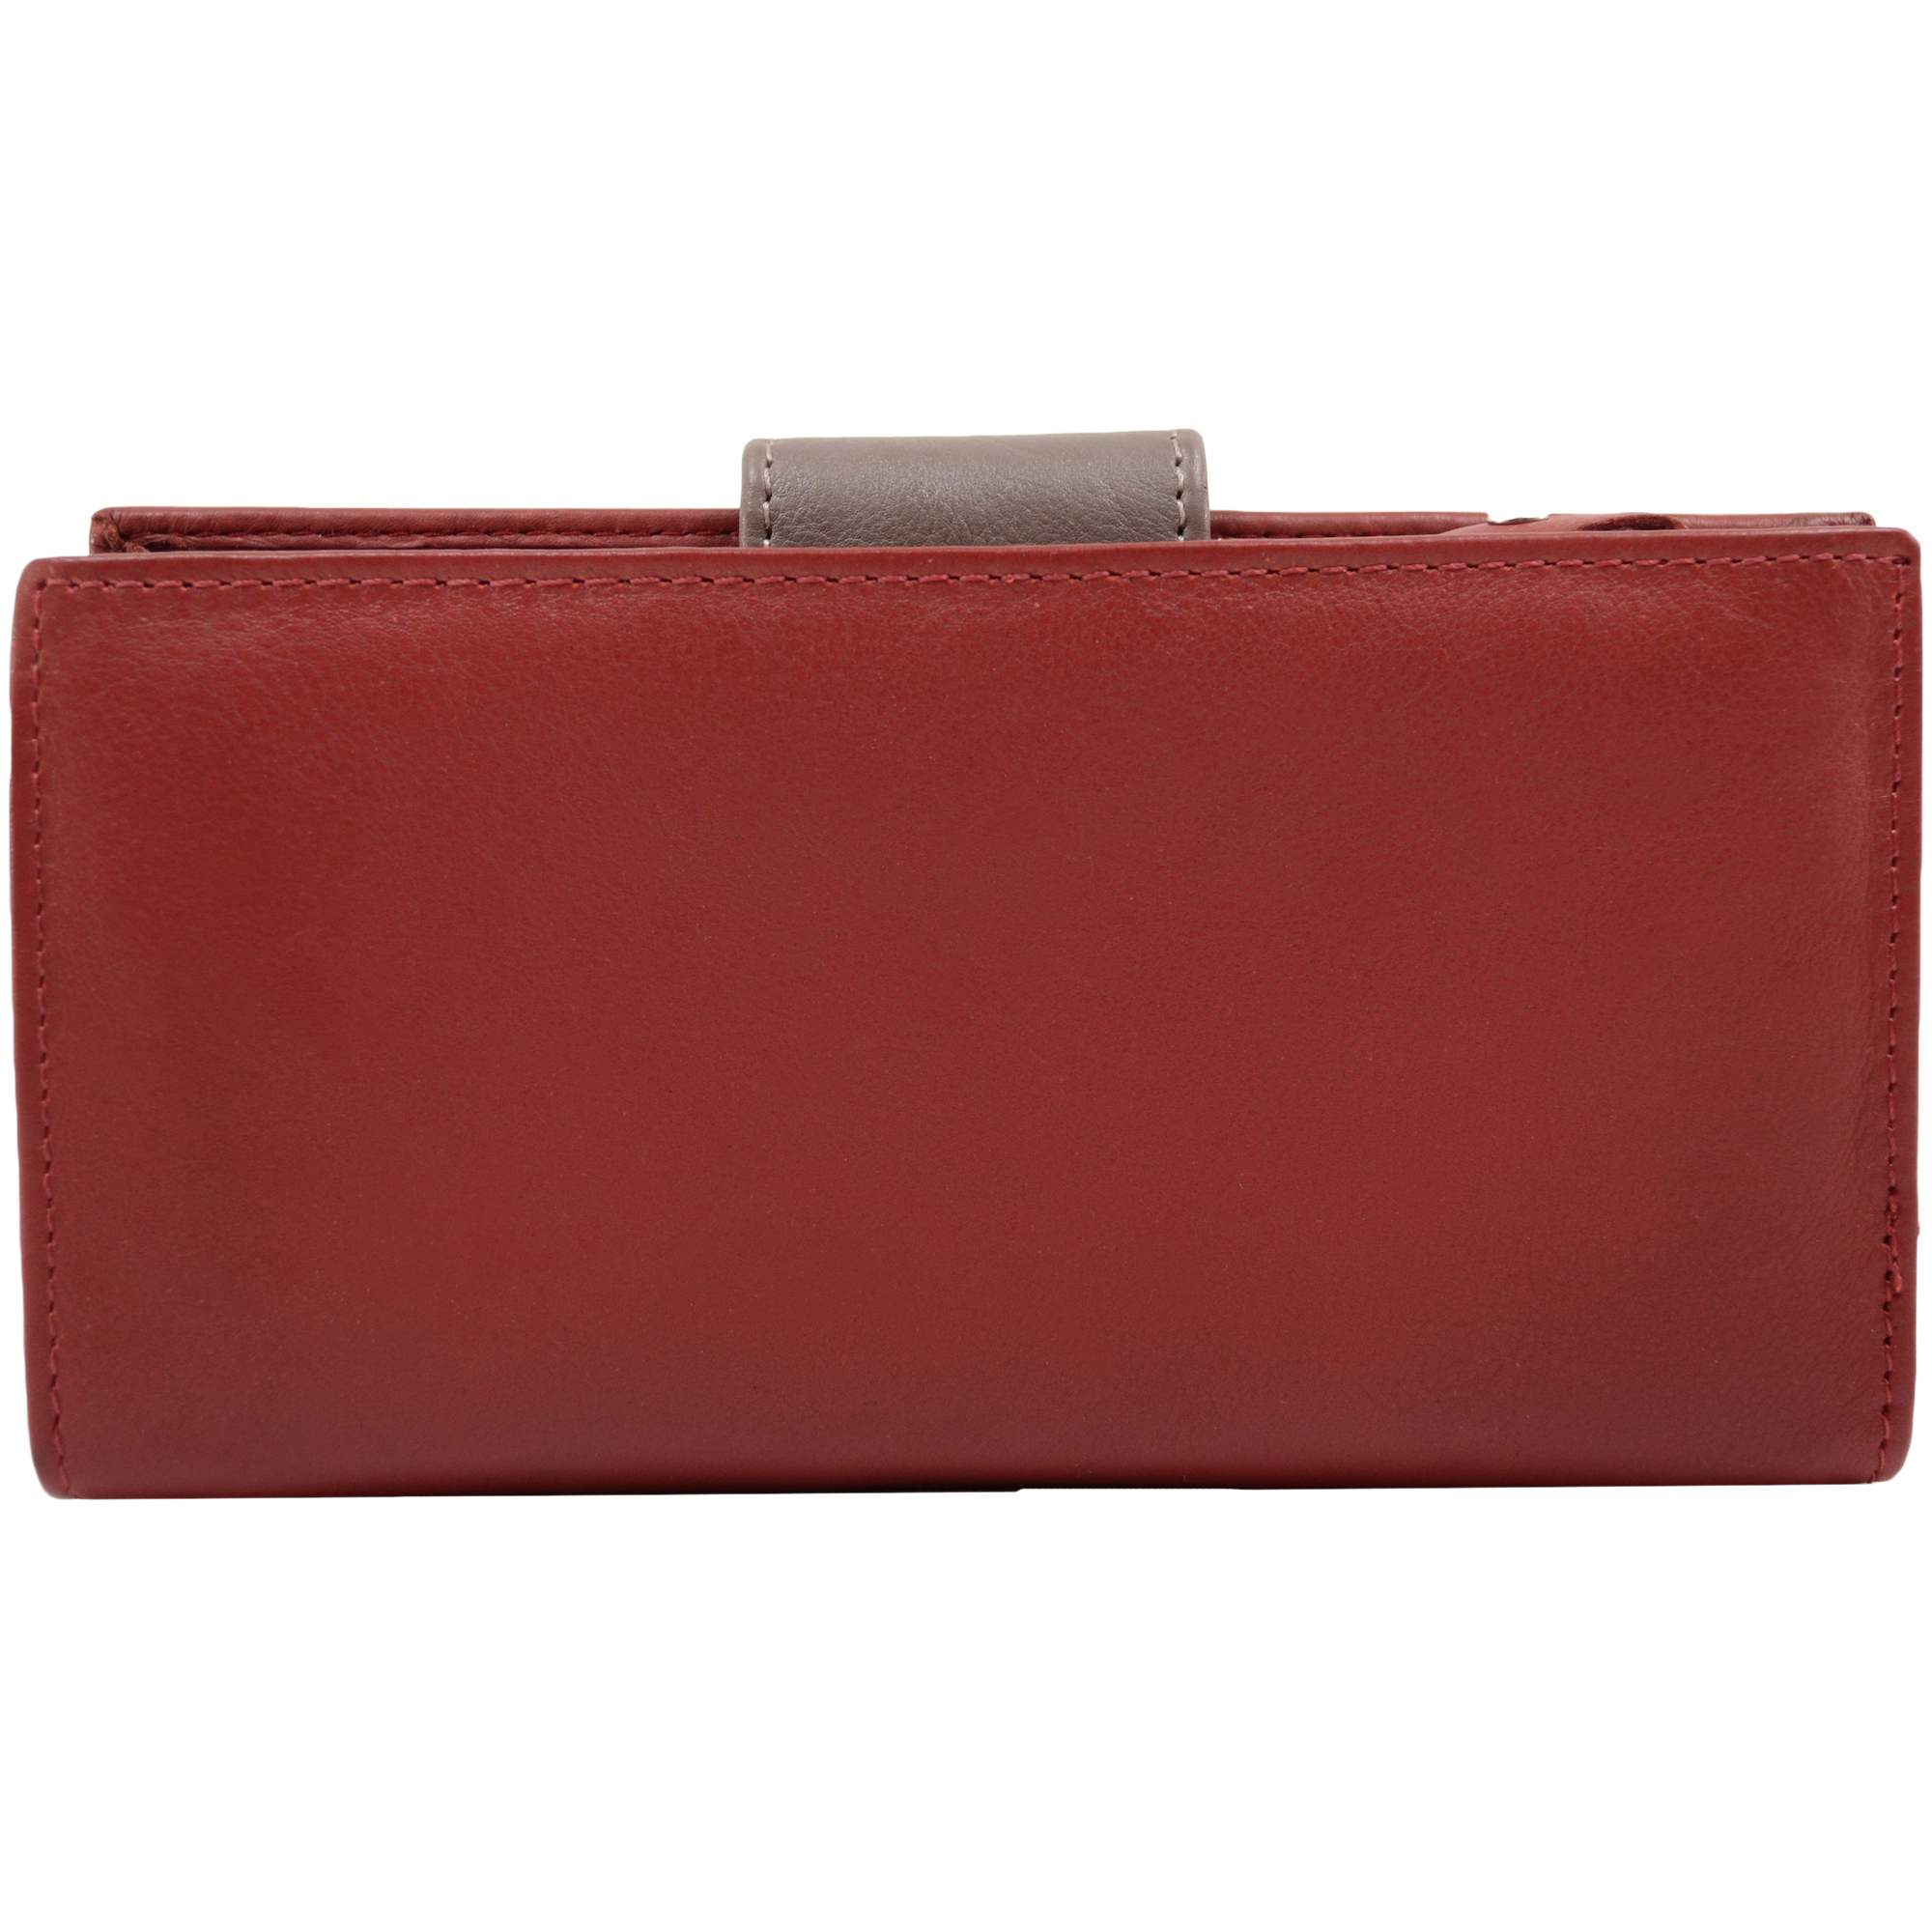 Soft Leather Purse Coin Holder - Sandy